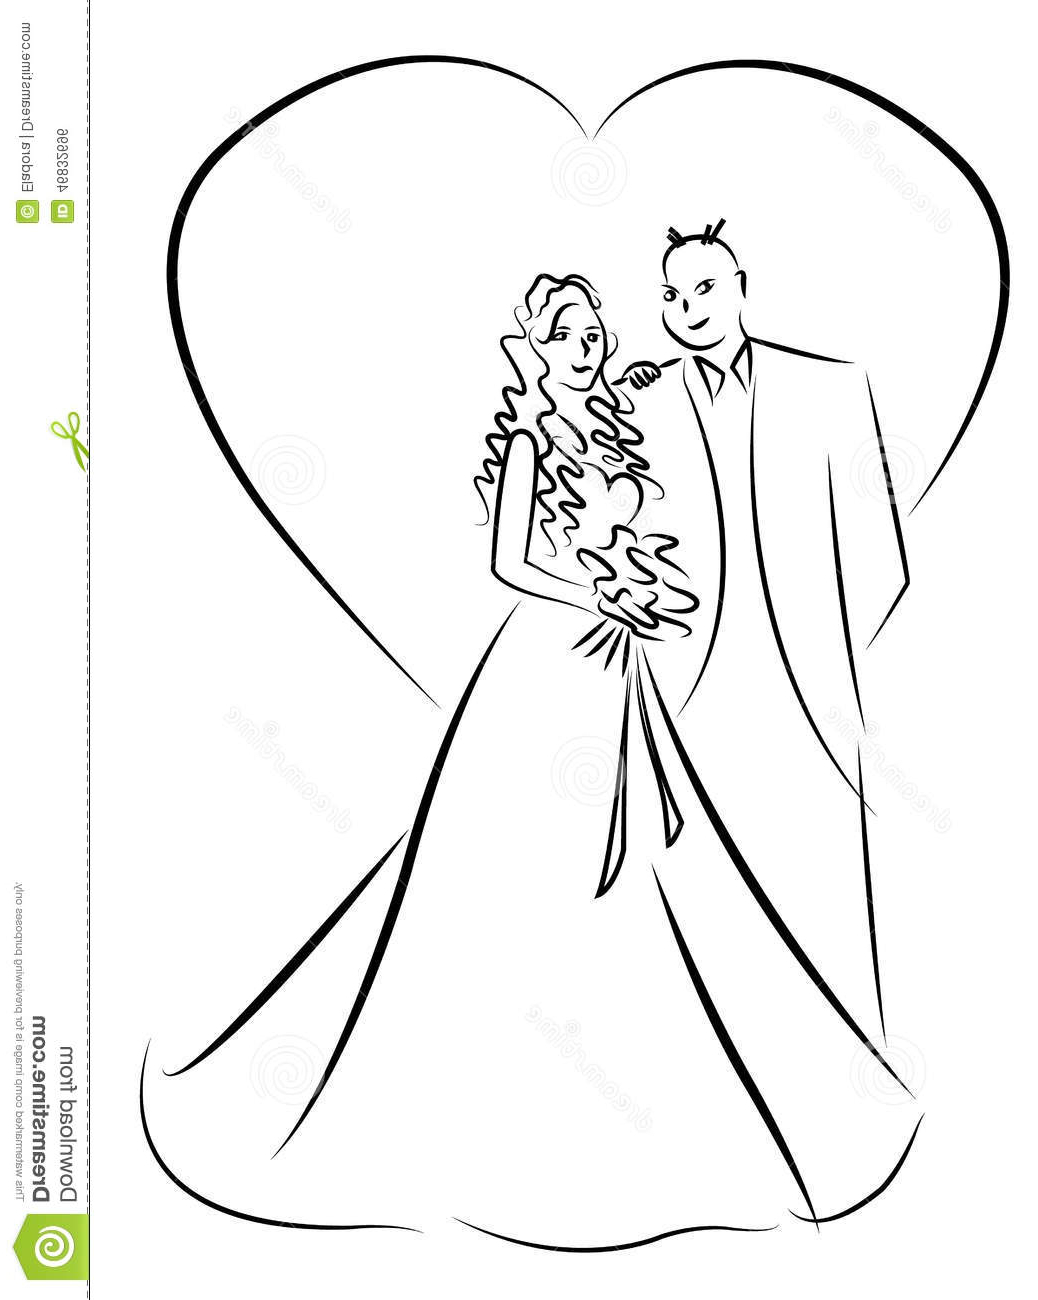 how to draw a wedding couple pencil drawing of wedding couple pencil sketch portraits how couple wedding draw to a